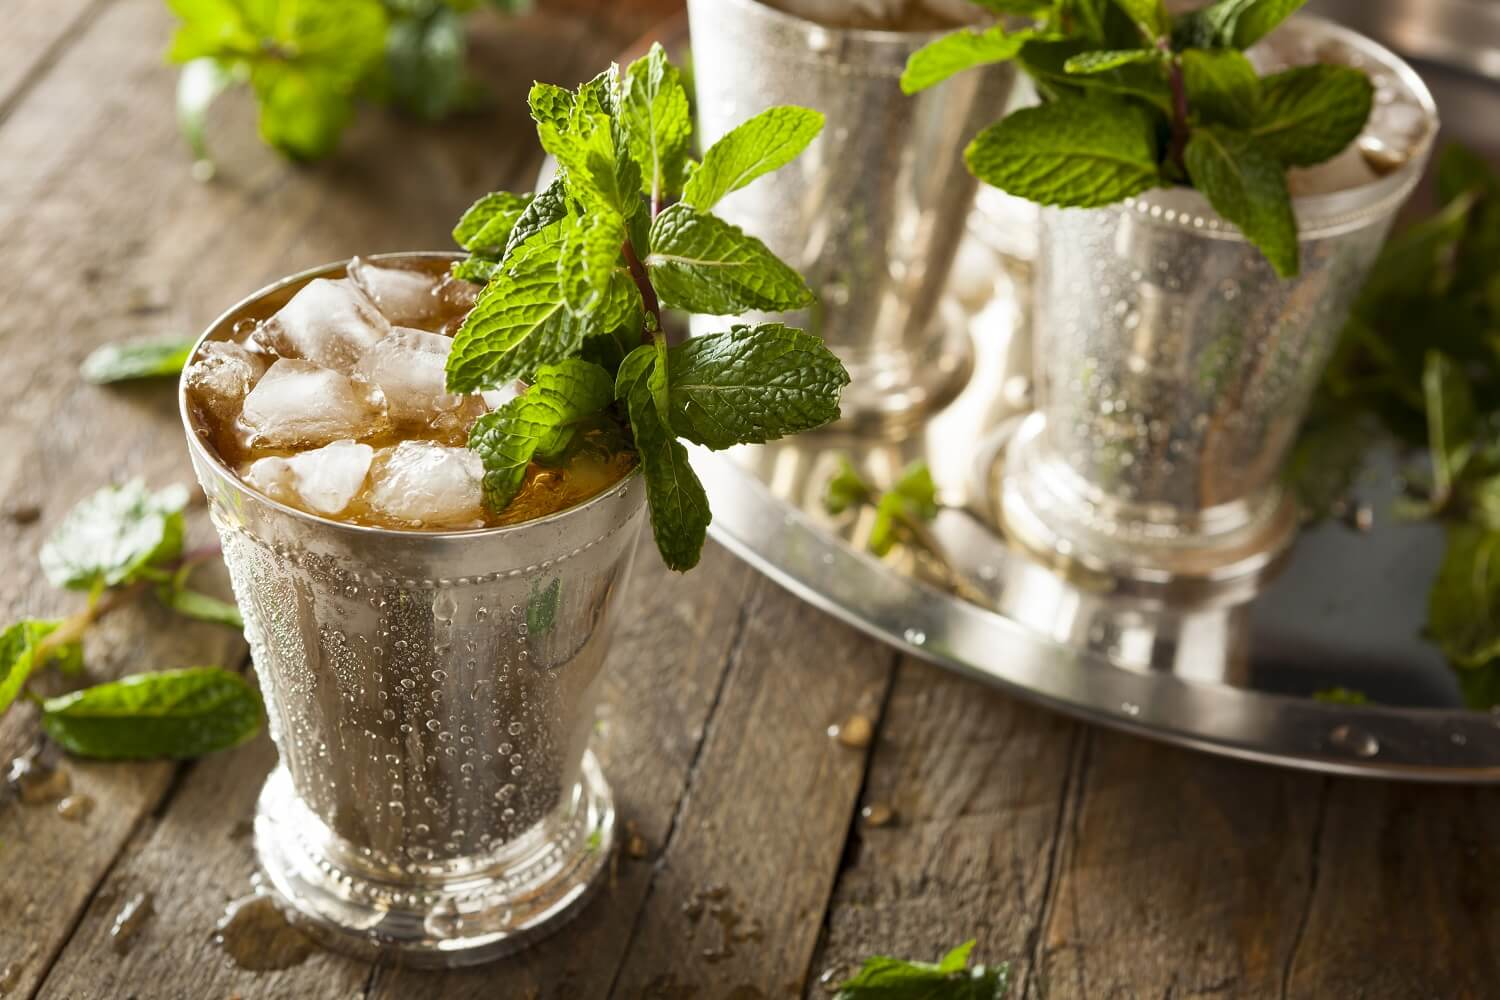 A tray of pre-made mint julep whisky highball